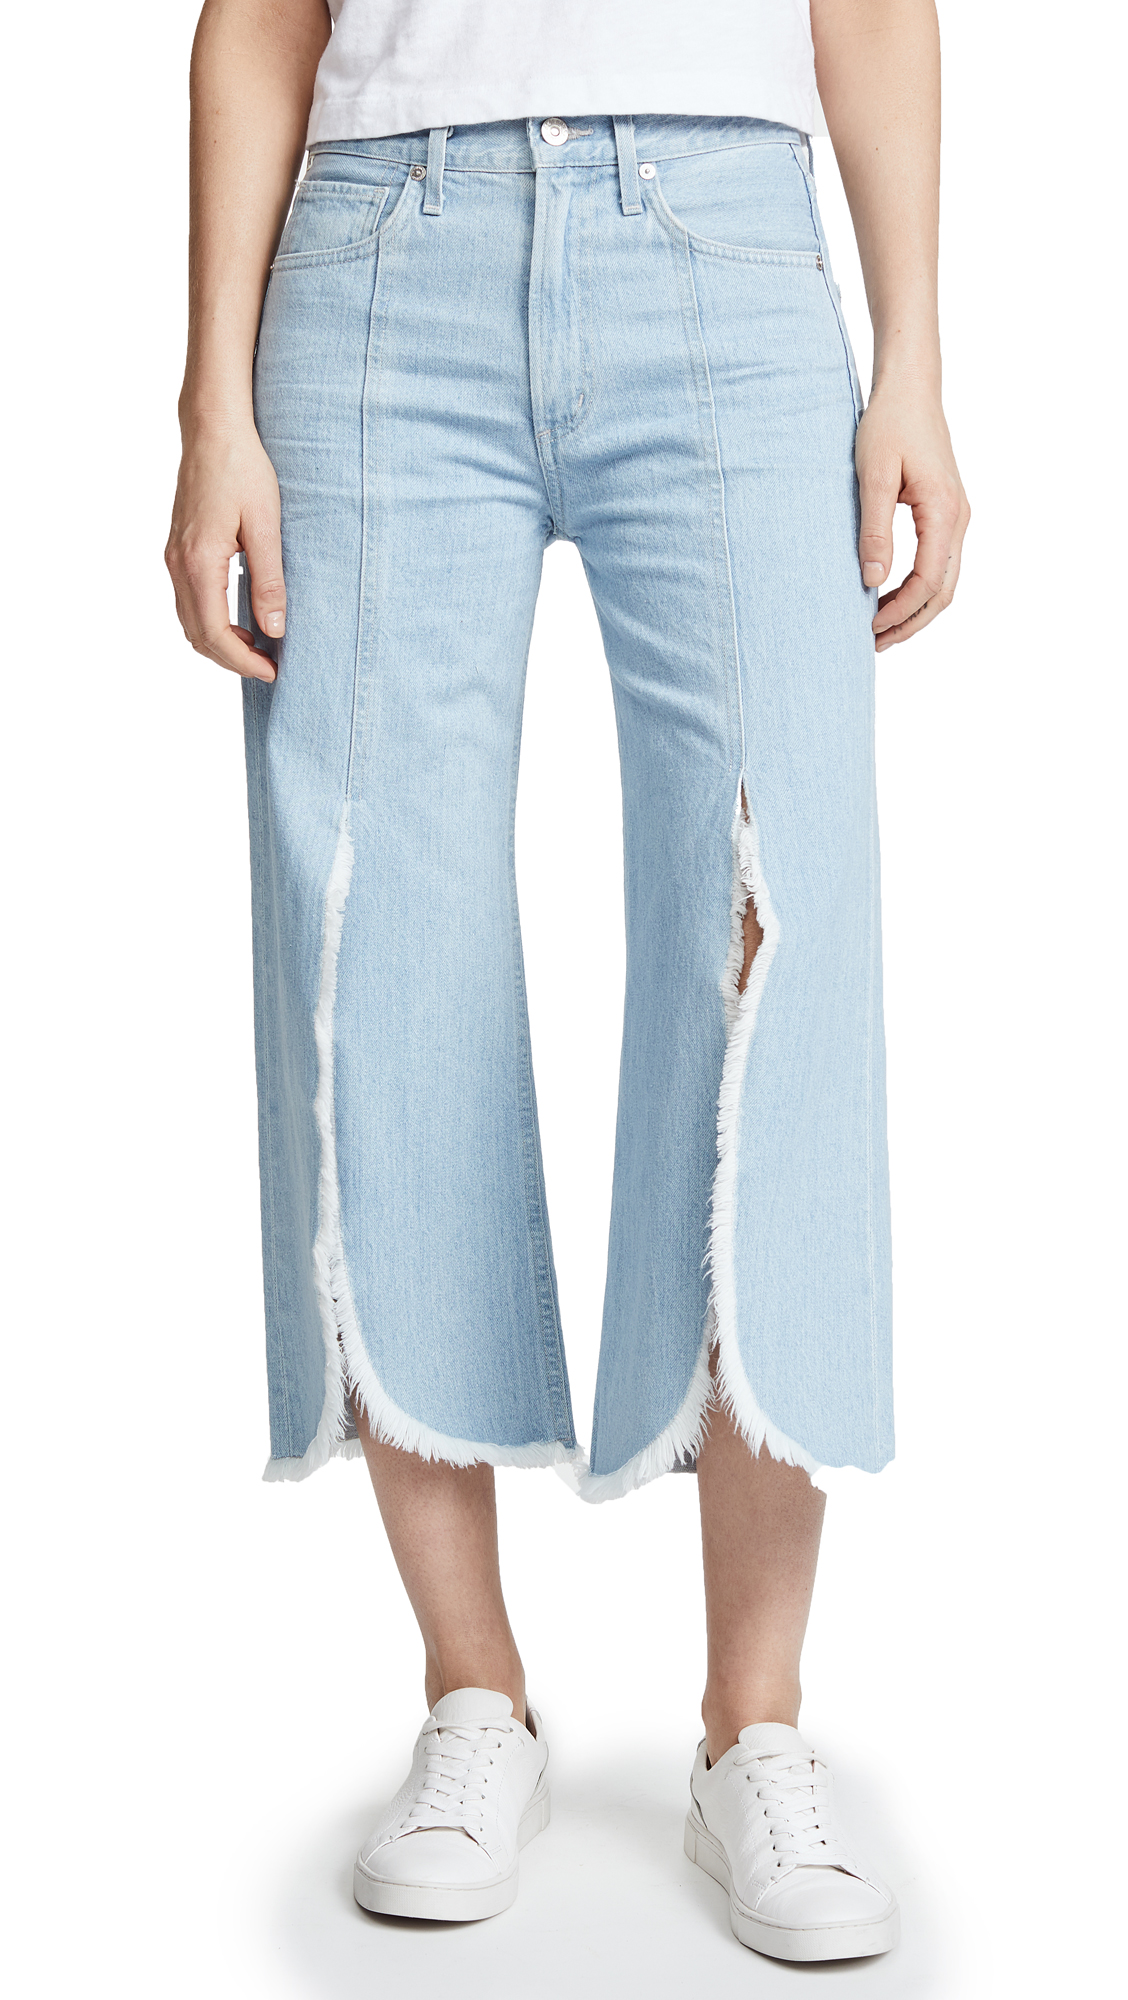 Citizens of Humanity Tulip Jeans - Summer Breeze